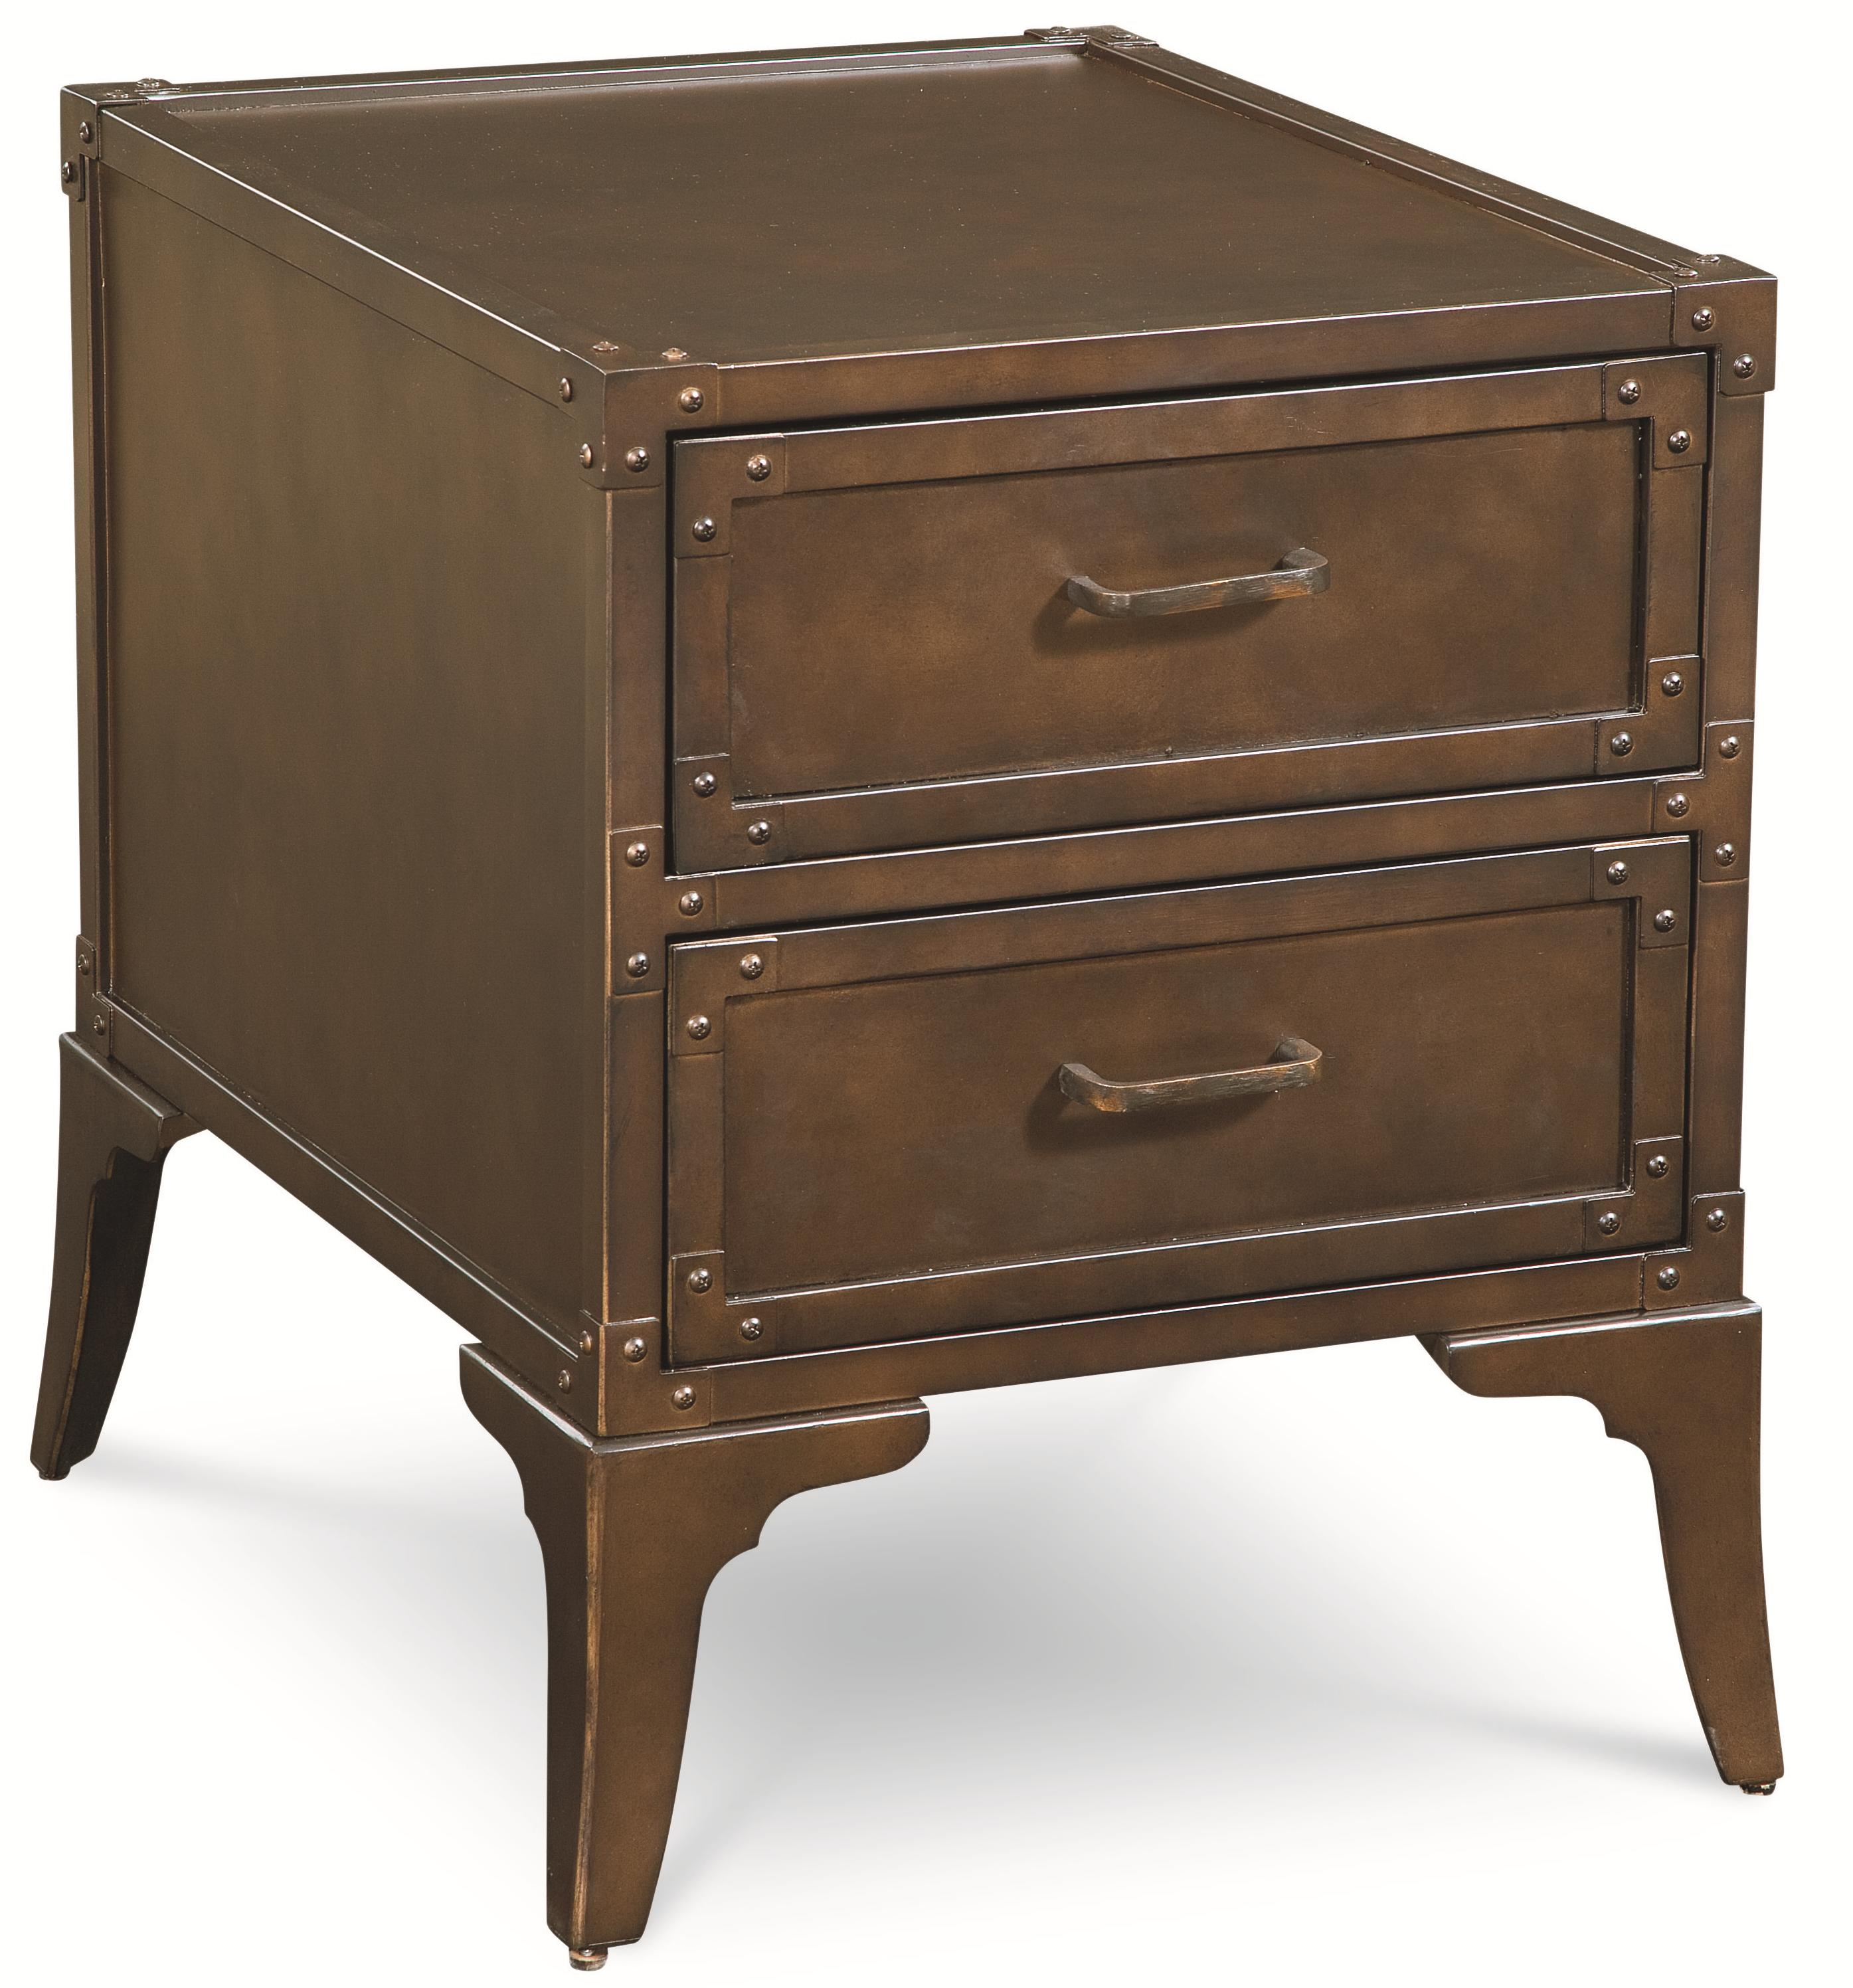 Thomasville® American Anthem End Table - Item Number: 82891-255